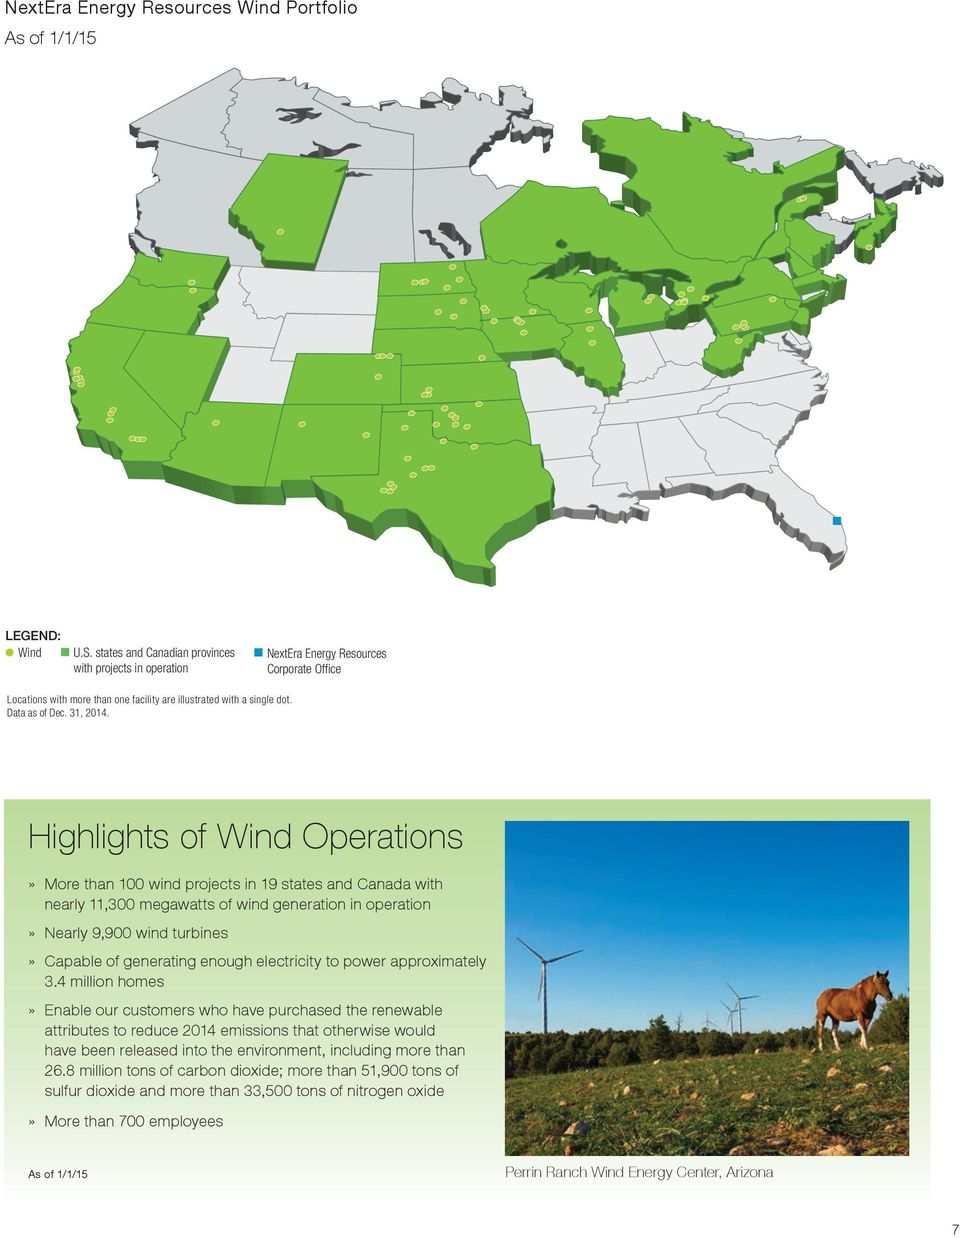 Highlights of Wind Operations» More than 100 wind projects in 19 states and Canada with nearly 11,300 megawatts of wind generation in operation» Nearly 9,900 wind turbines» Capable of generating